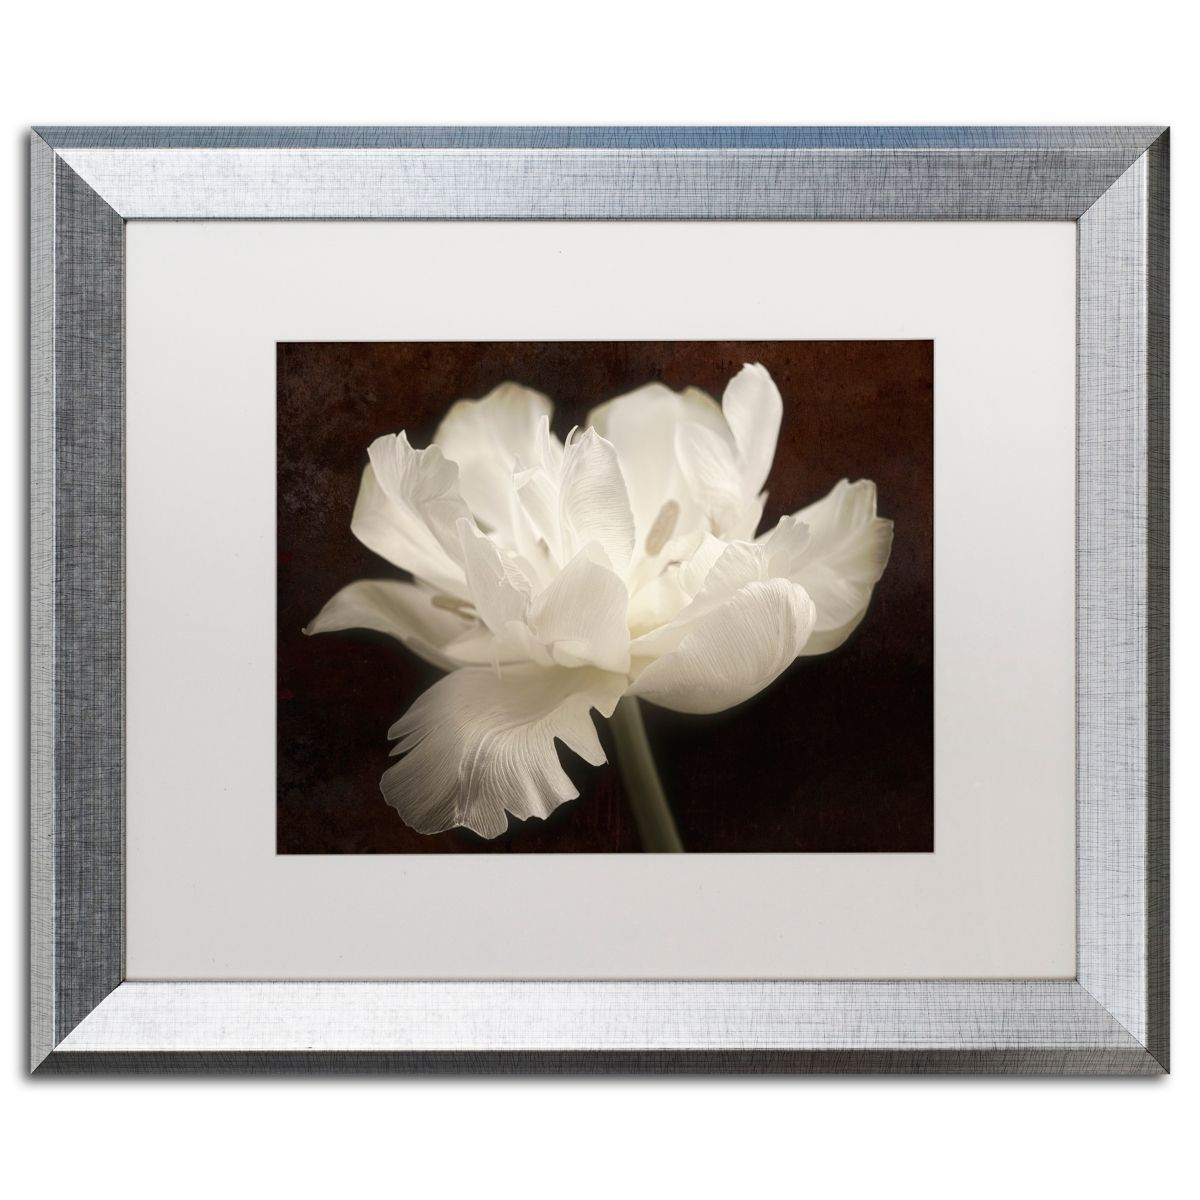 Cora Niele White Tulip Ii Matted Framed Art 16 X 20 Open Misce With Images Framed Art White Tulips Trademark Fine Art